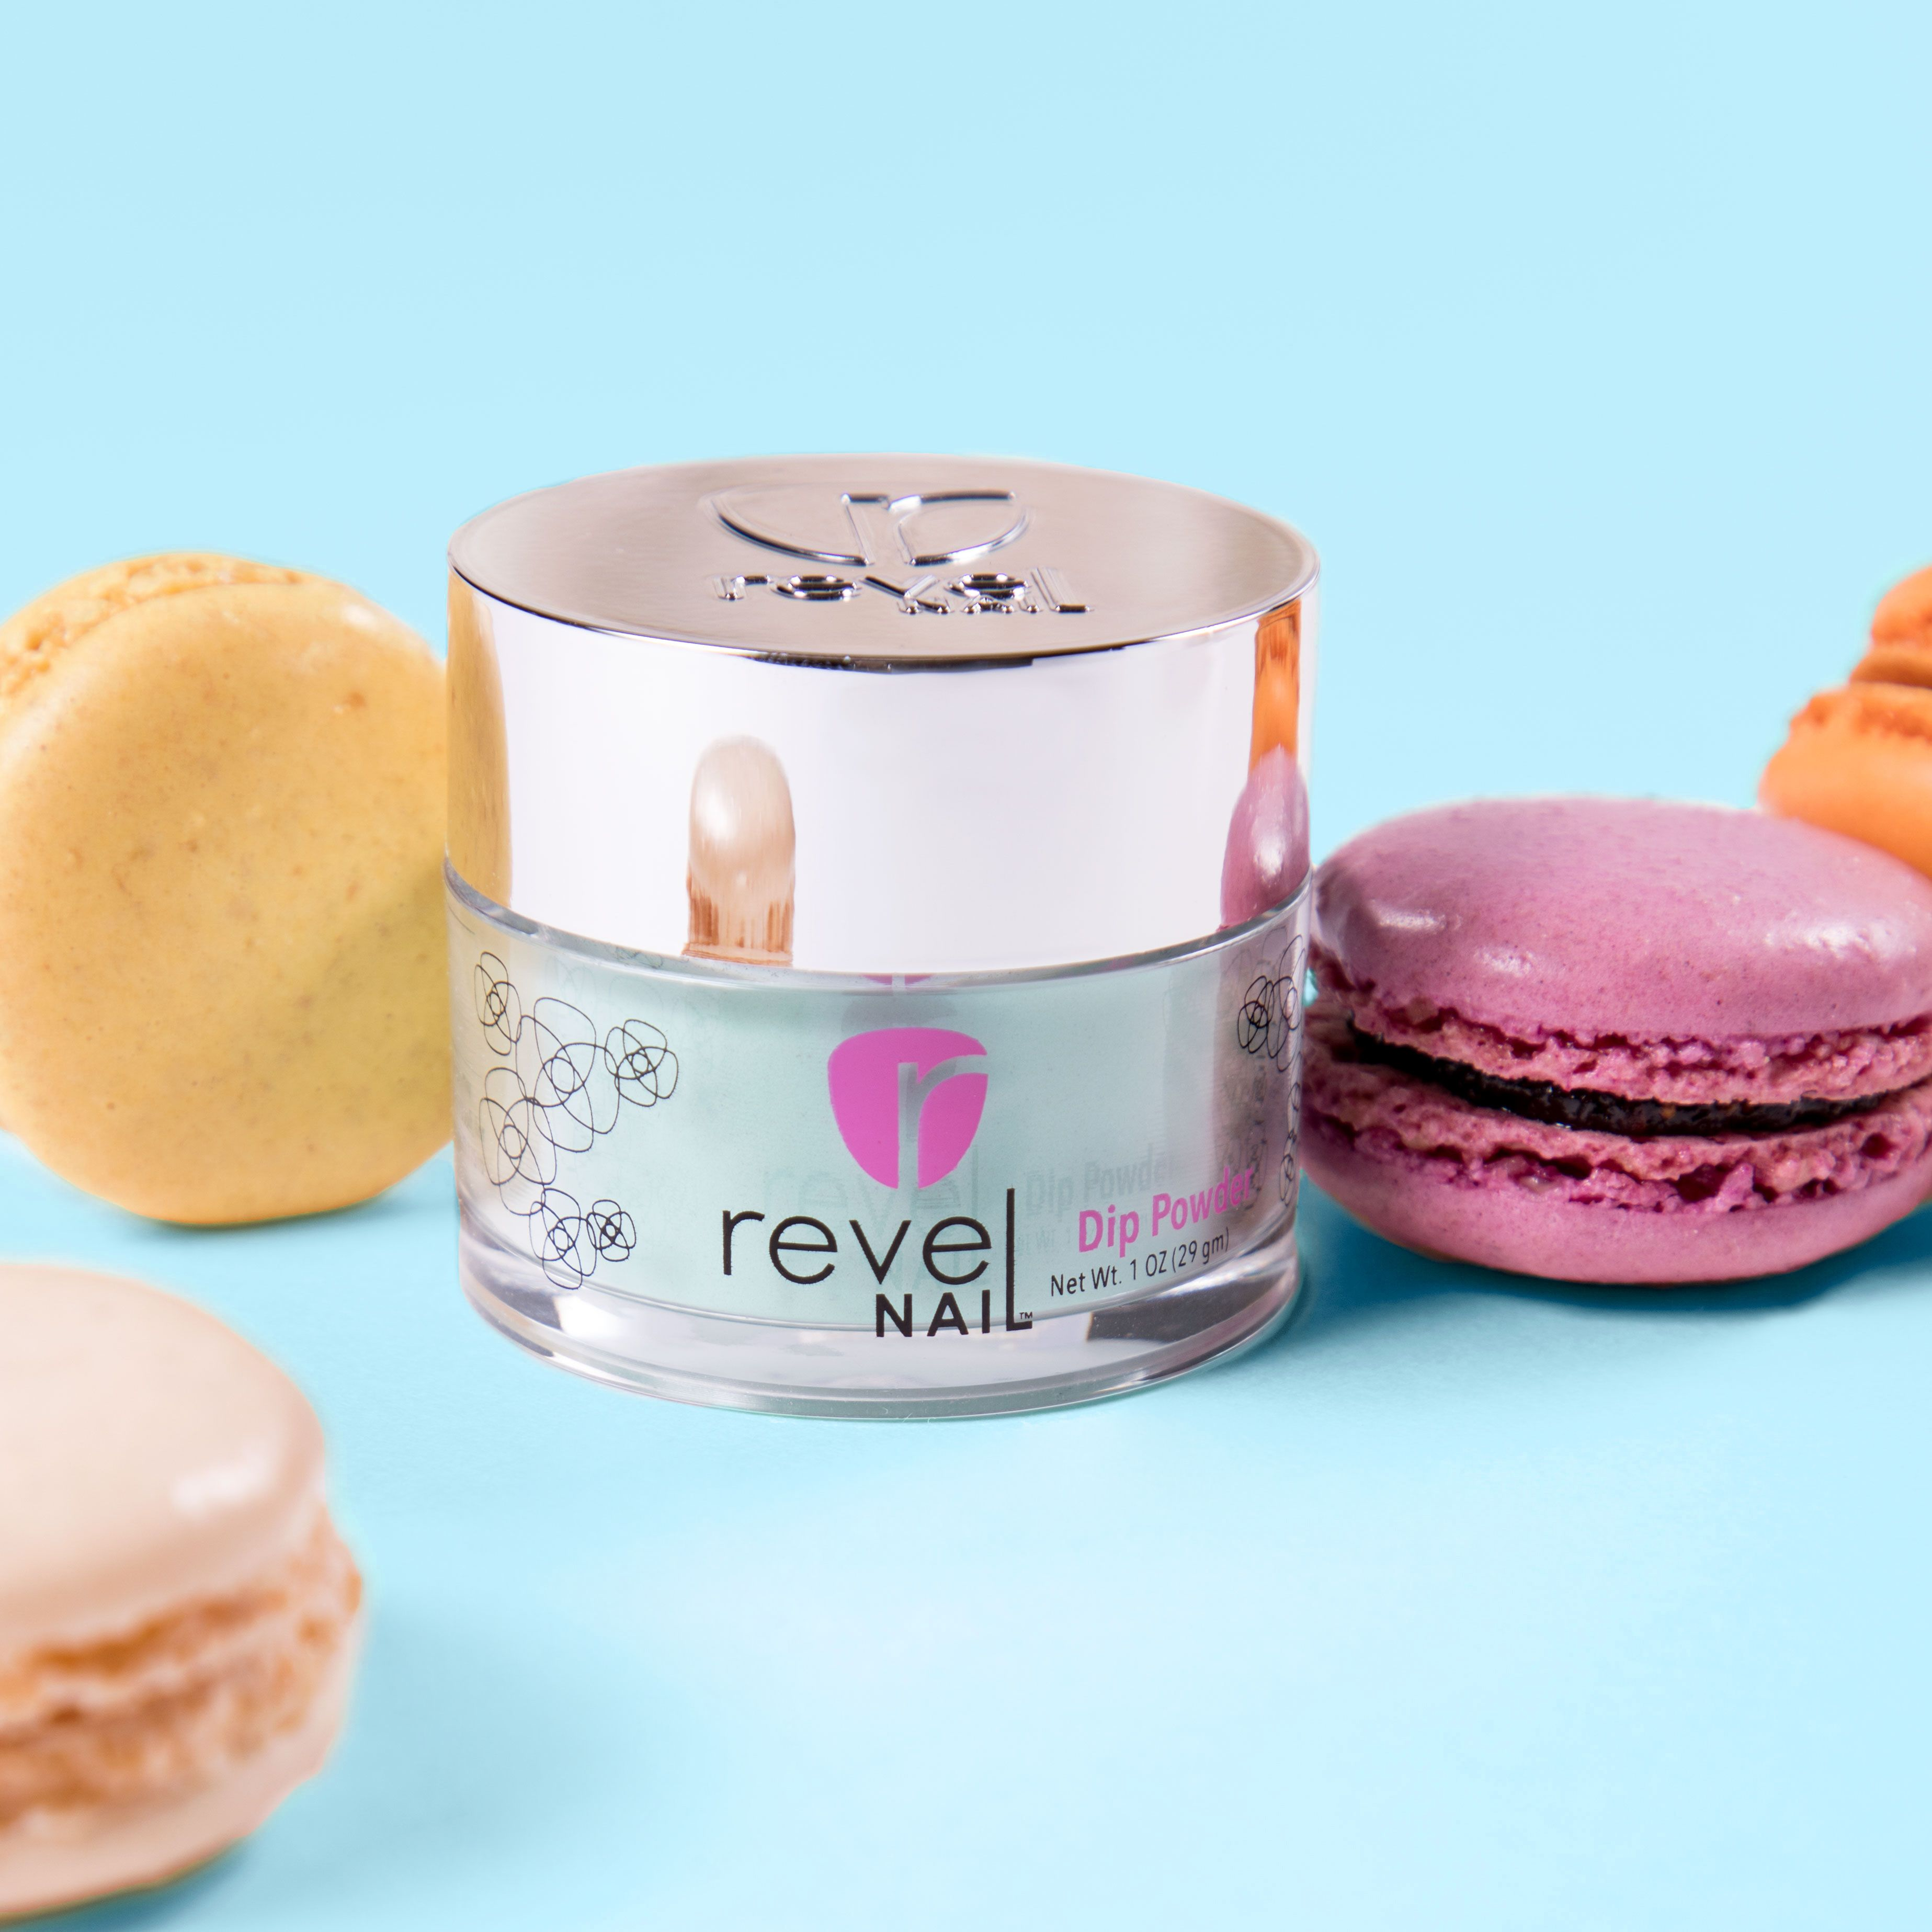 Give The Gift Of Revel This Holiday Season! For $100 You